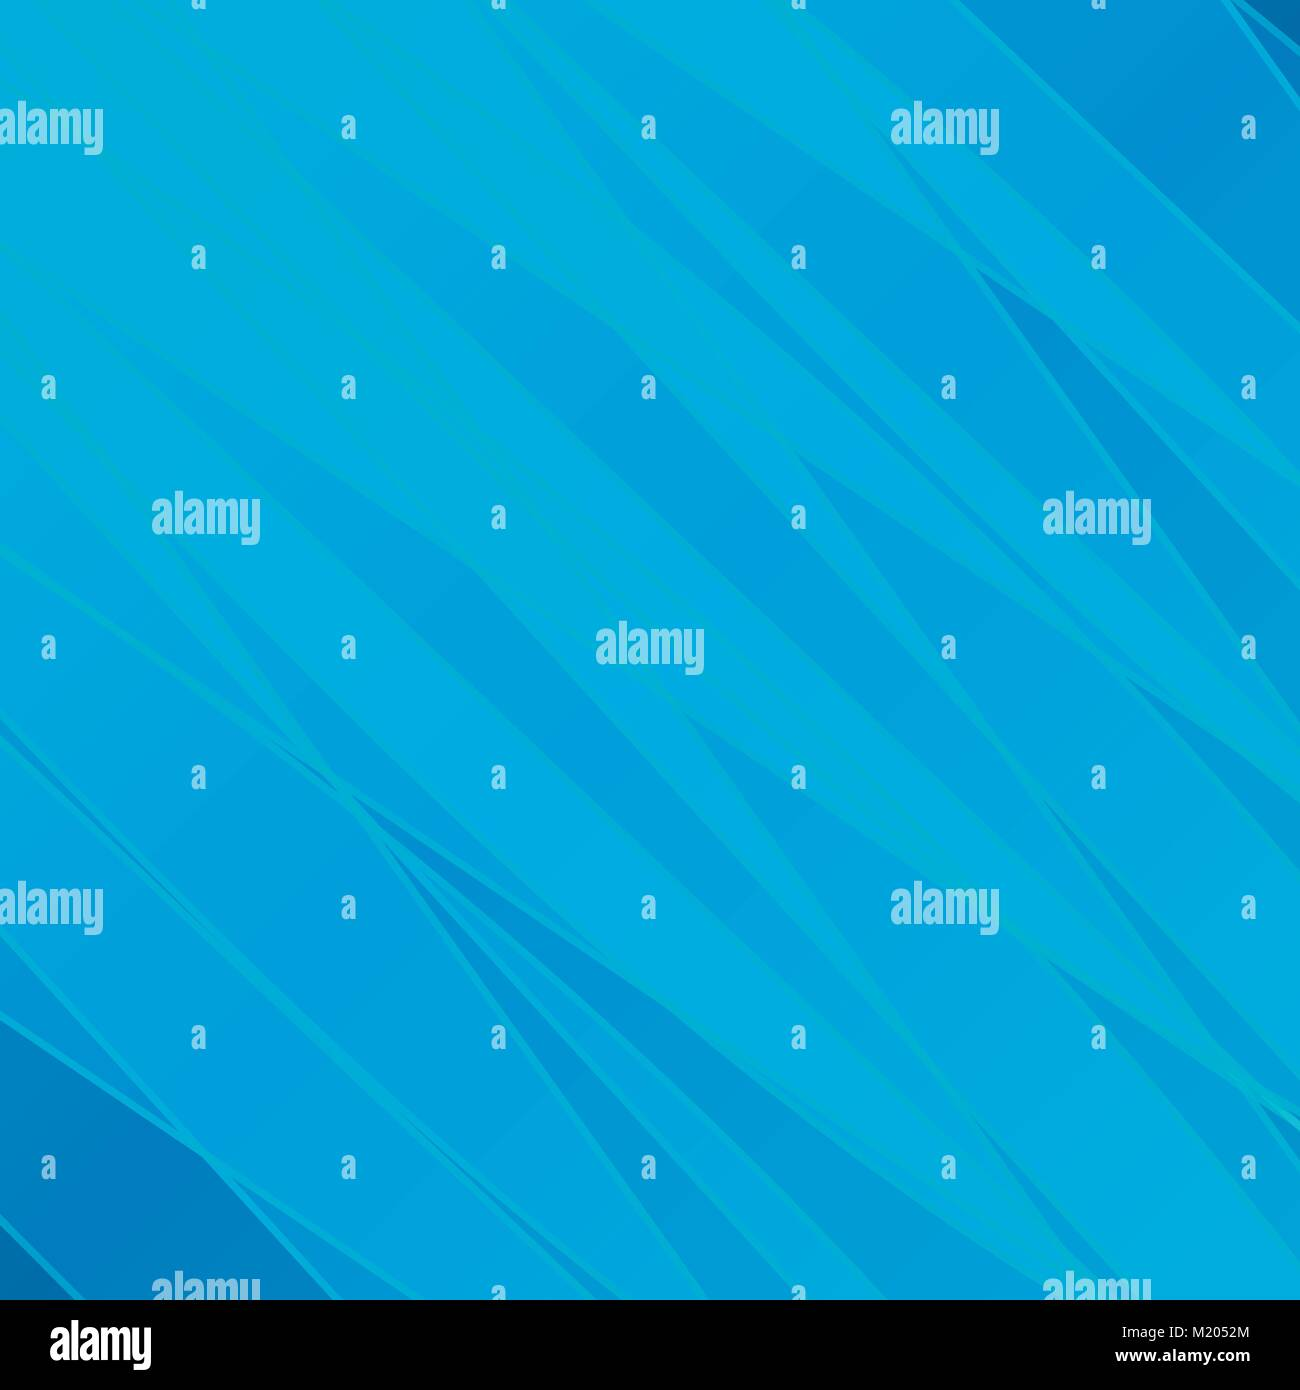 Smooth translucent lines on a blue background. Stock Vector